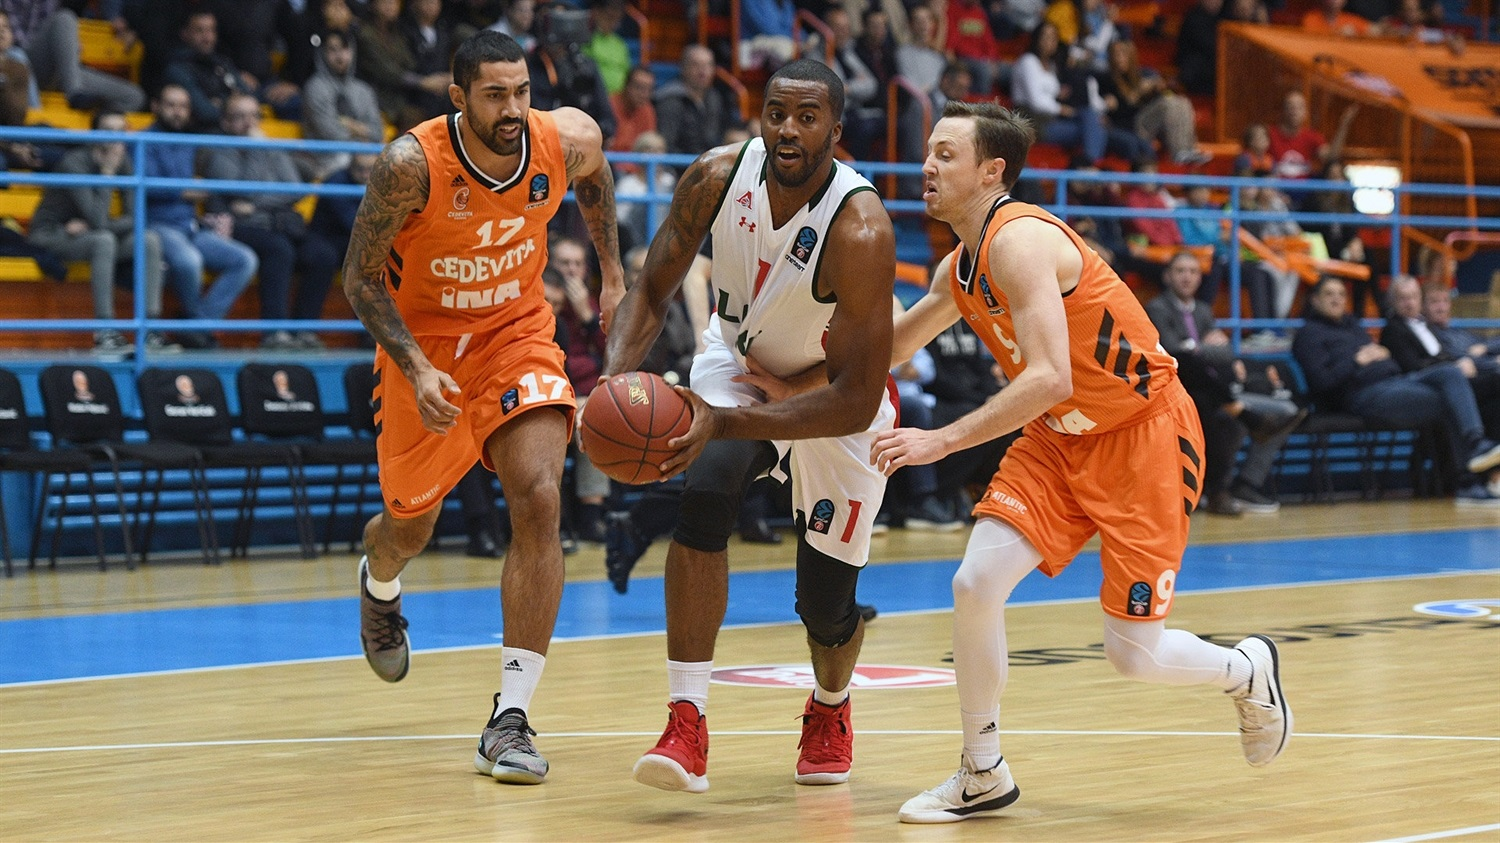 Jamel McLean - Lokomotiv Kuban Krasnodar (photo Cedevita) - EC18